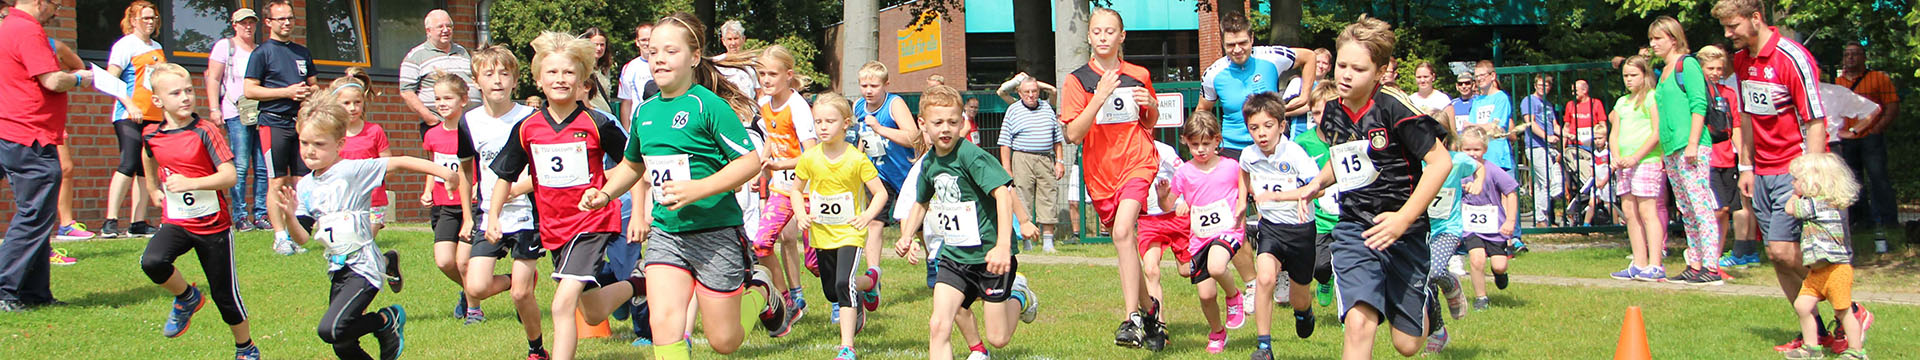 Start Kinderlauf.jpg